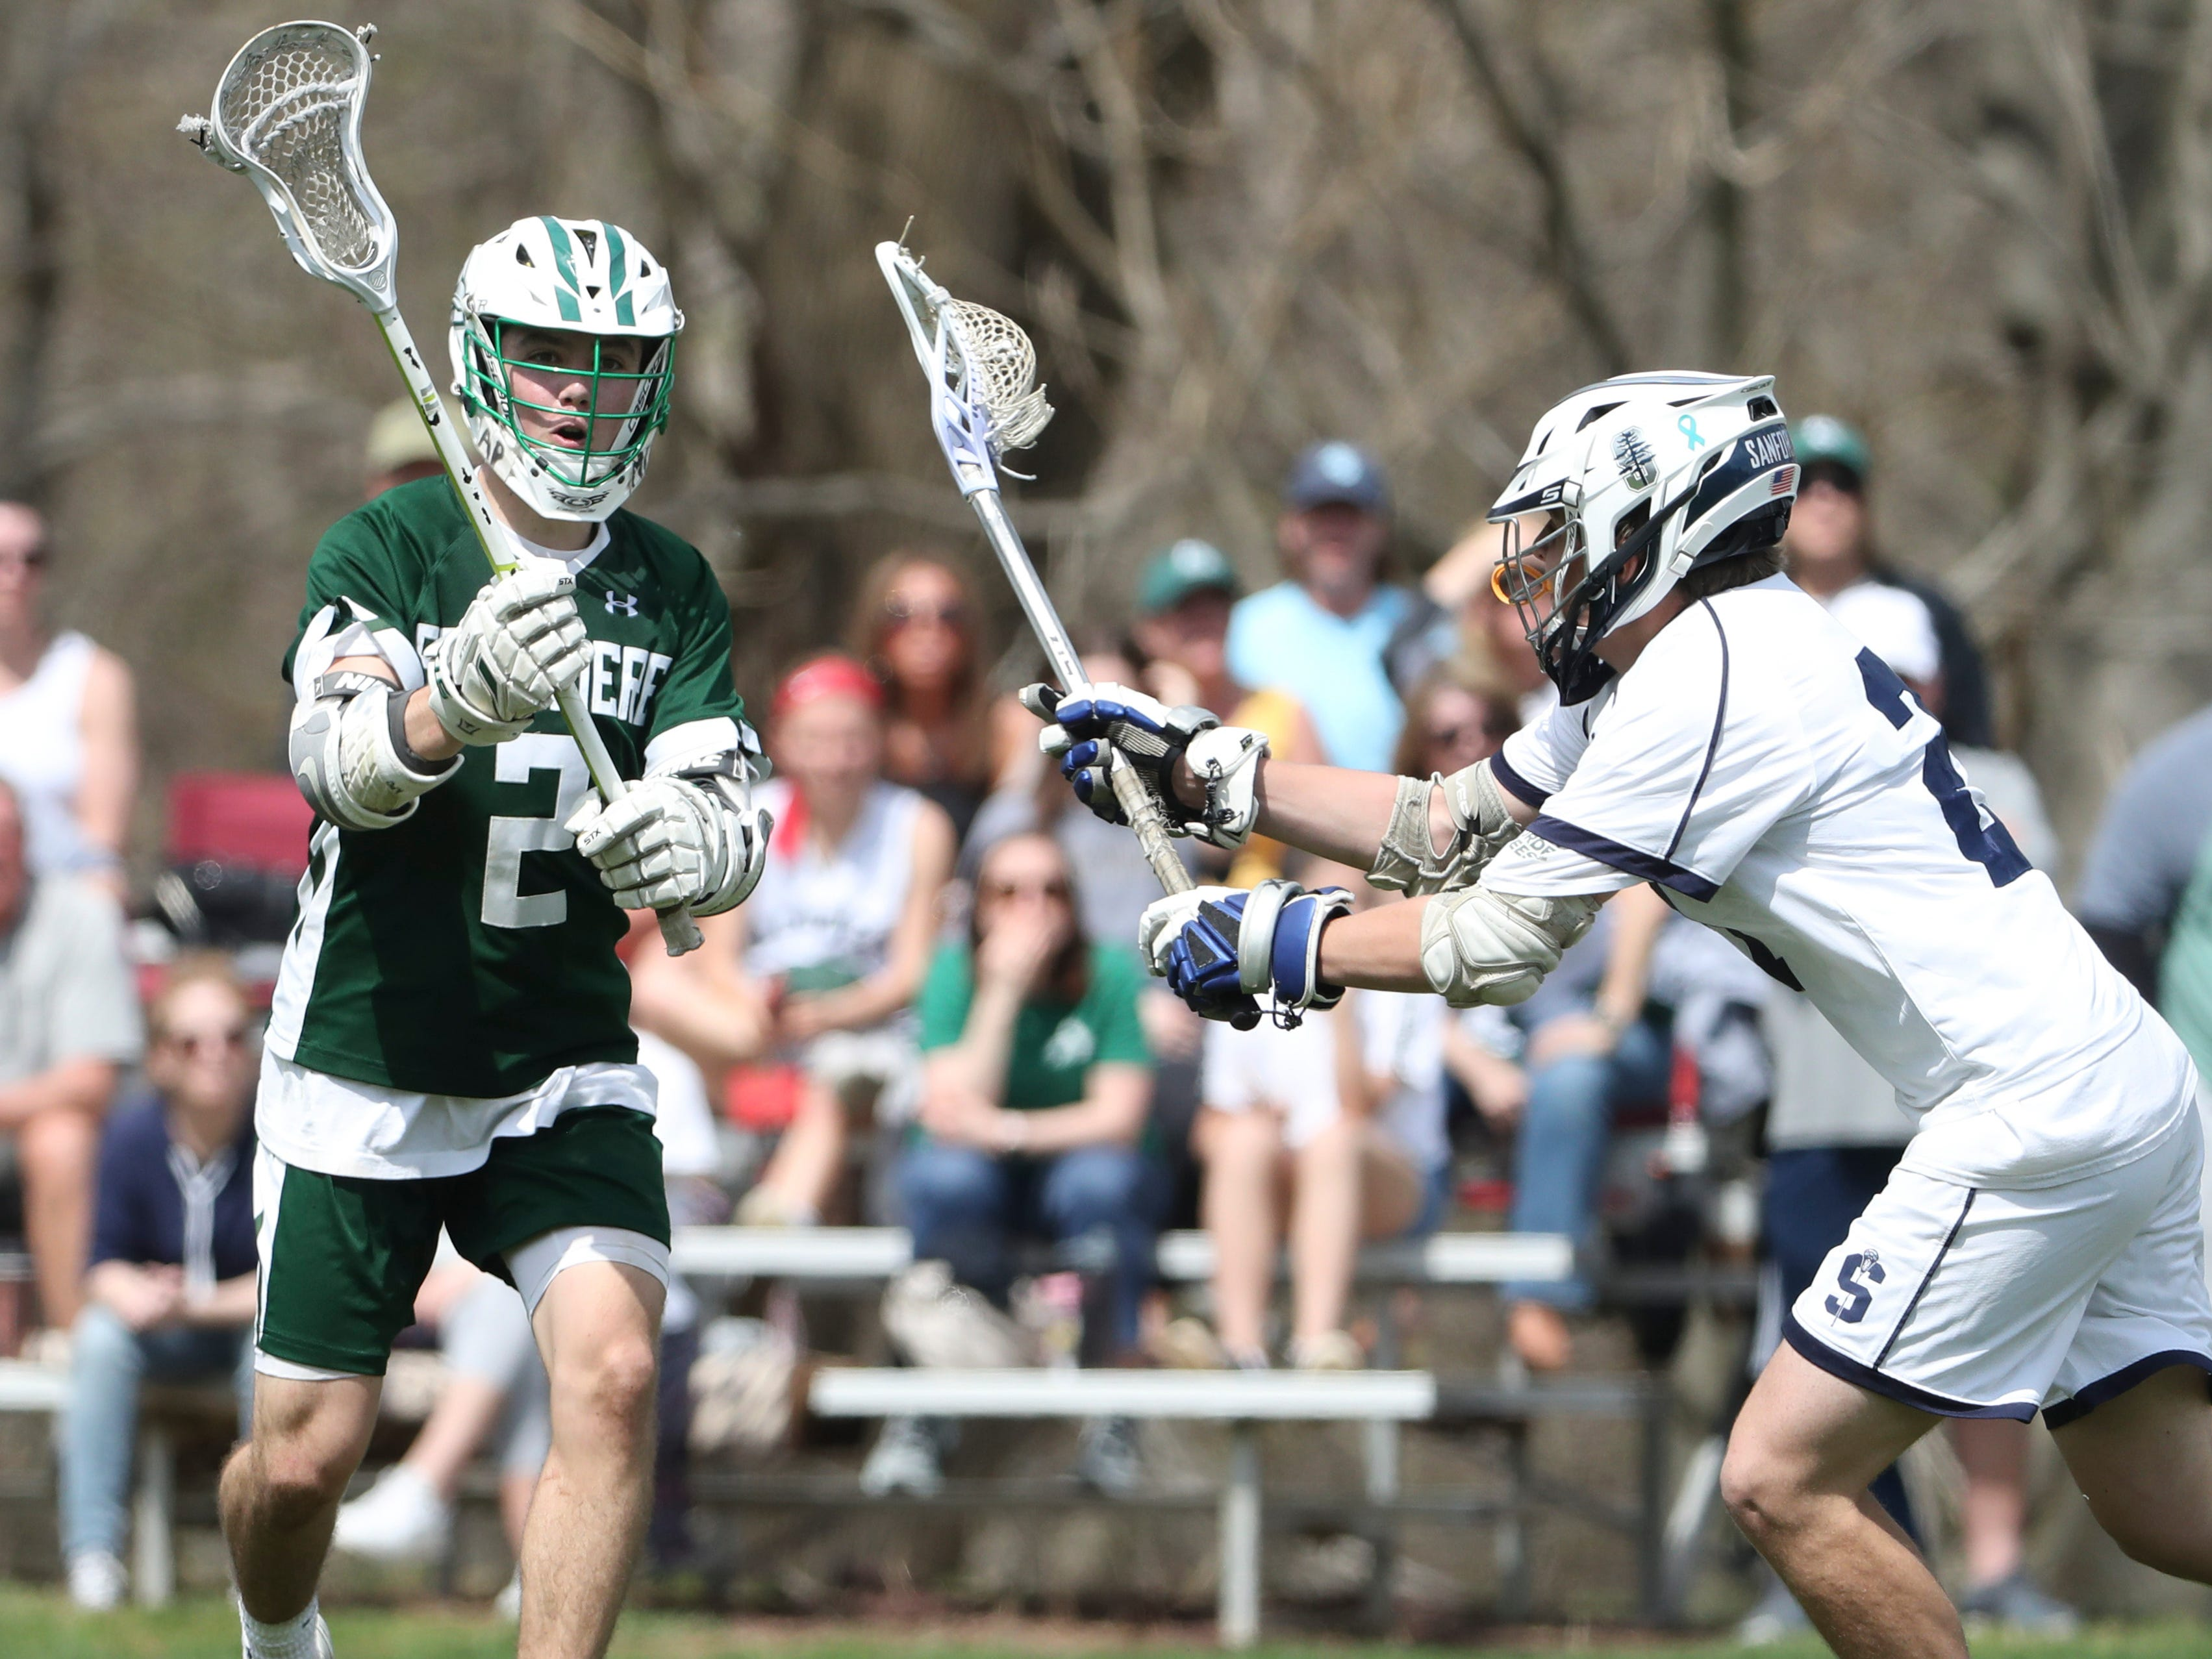 Archmere's Vincent Iannello (left) throws a pass past Sanford's Henry Bachtle in the second half of Sanford's 12-10 win Saturday.